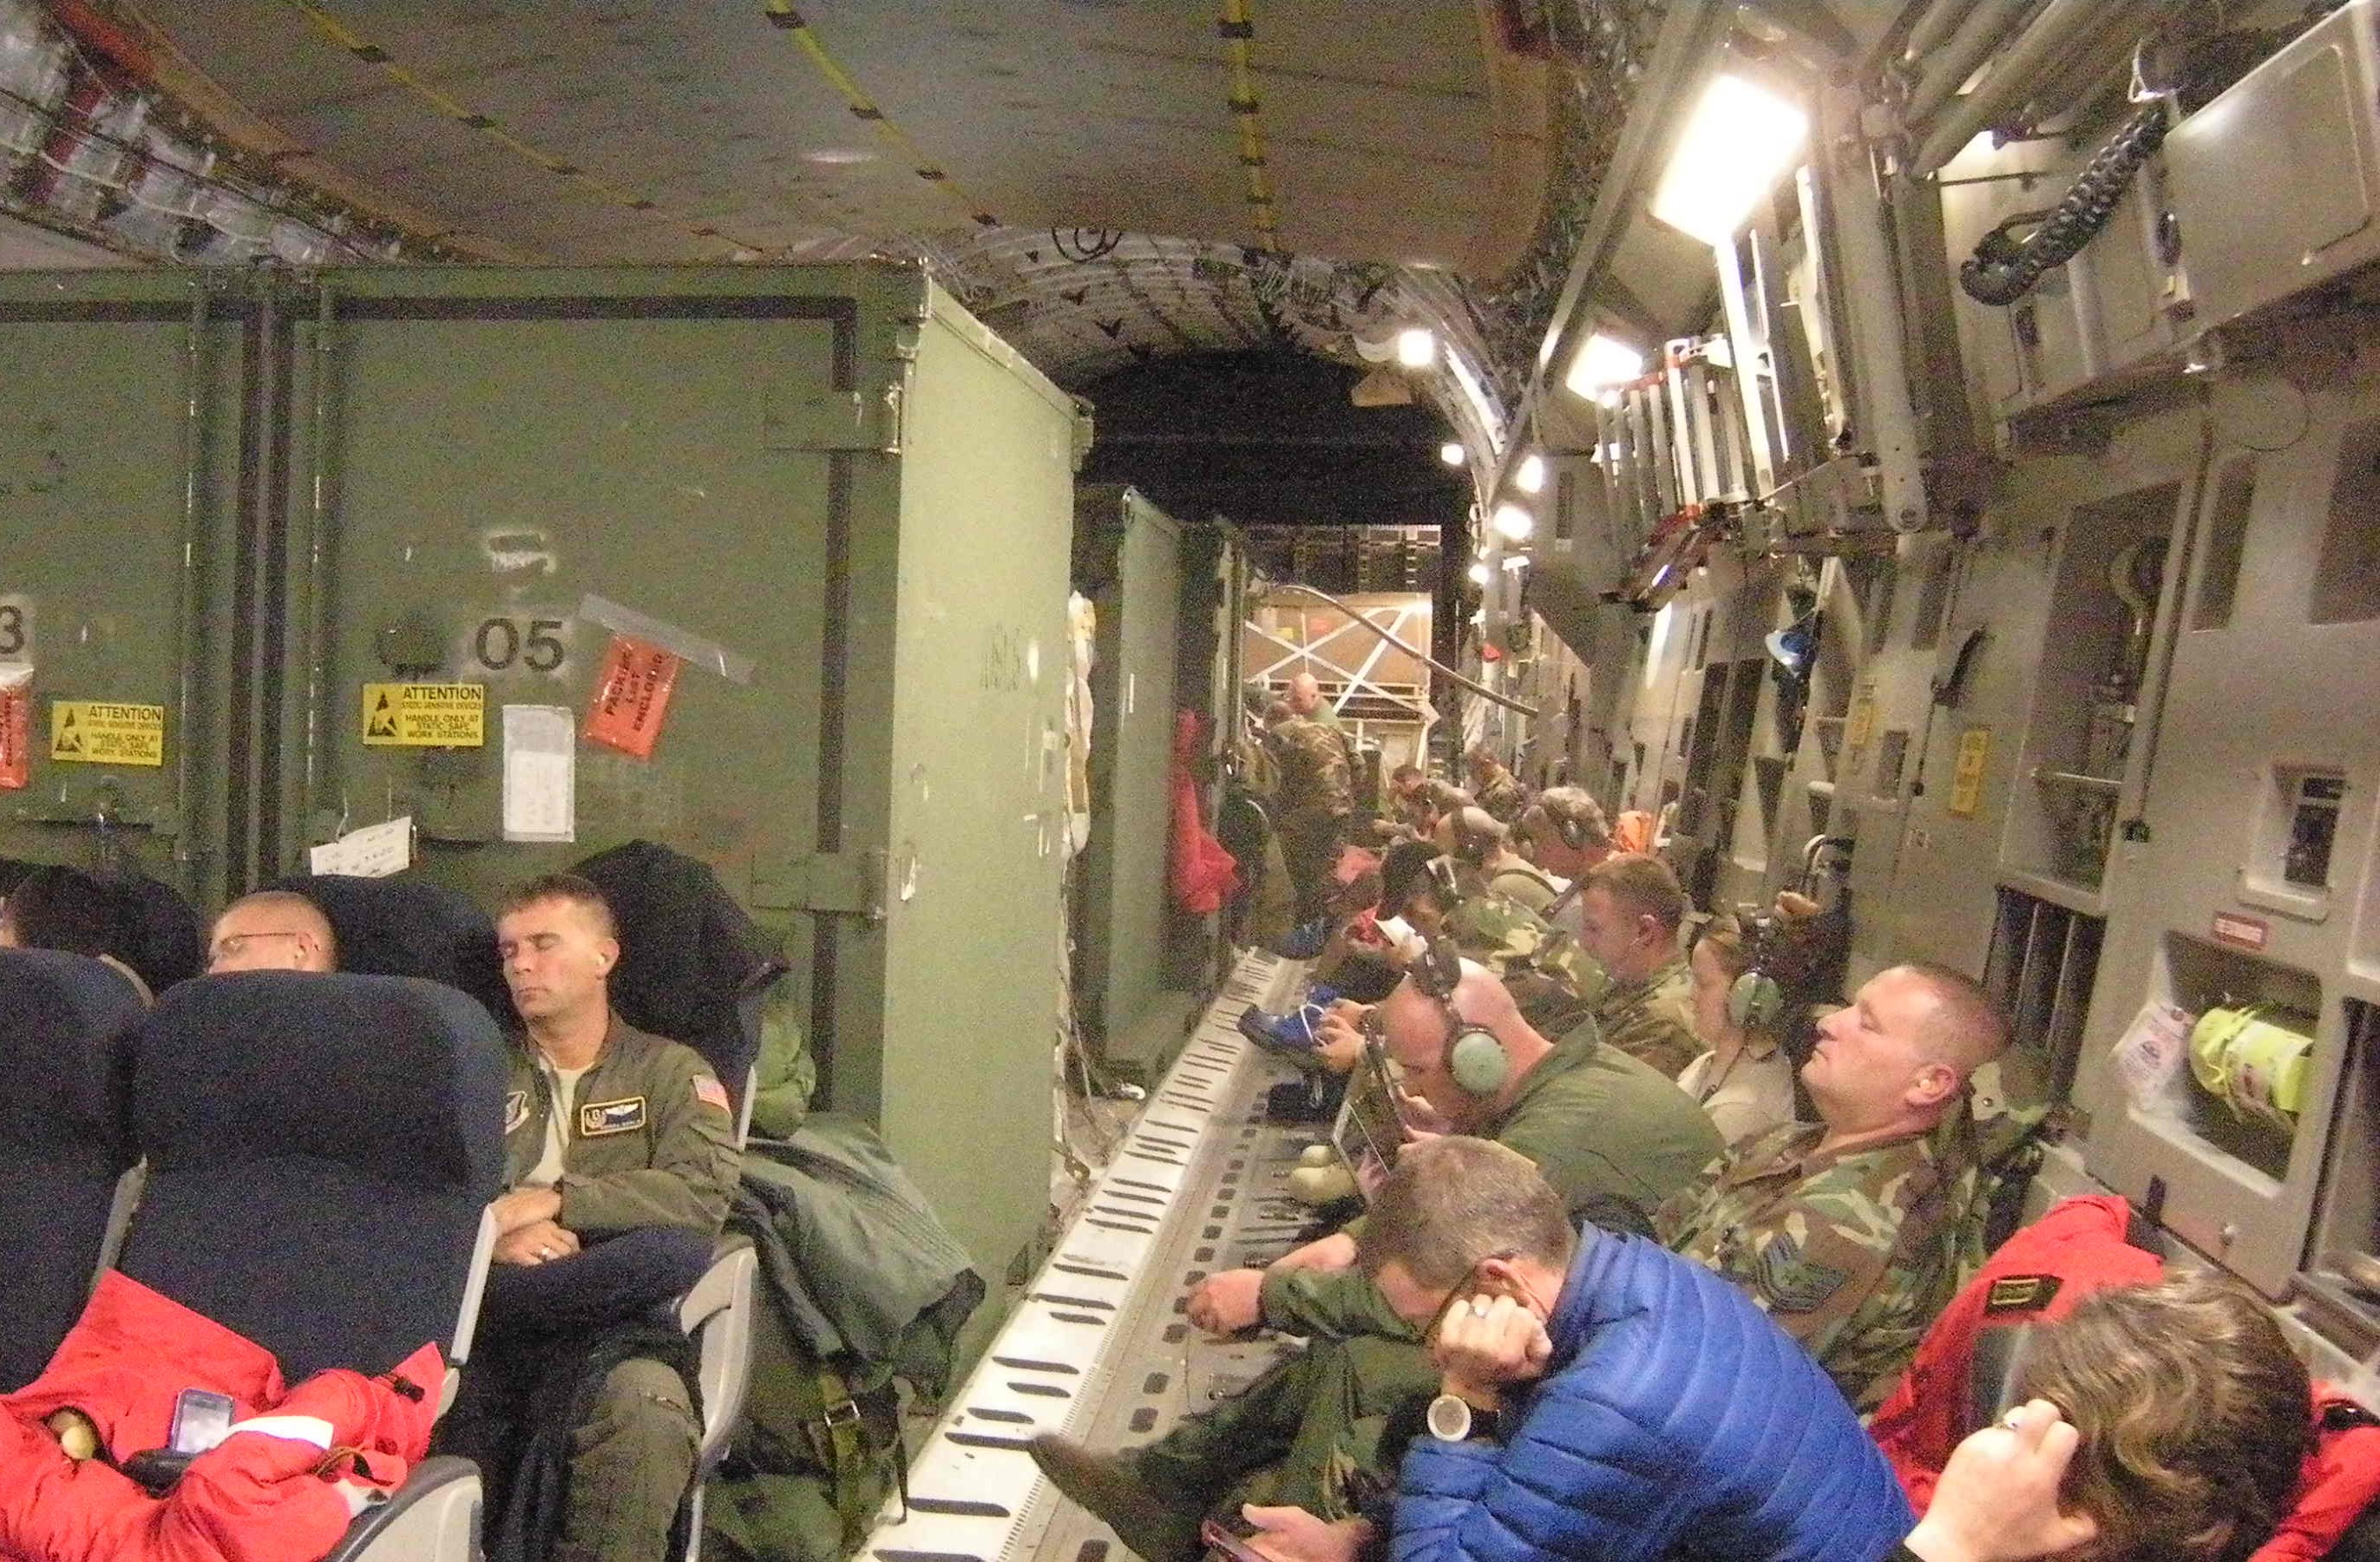 Stripped down interior of the C-17